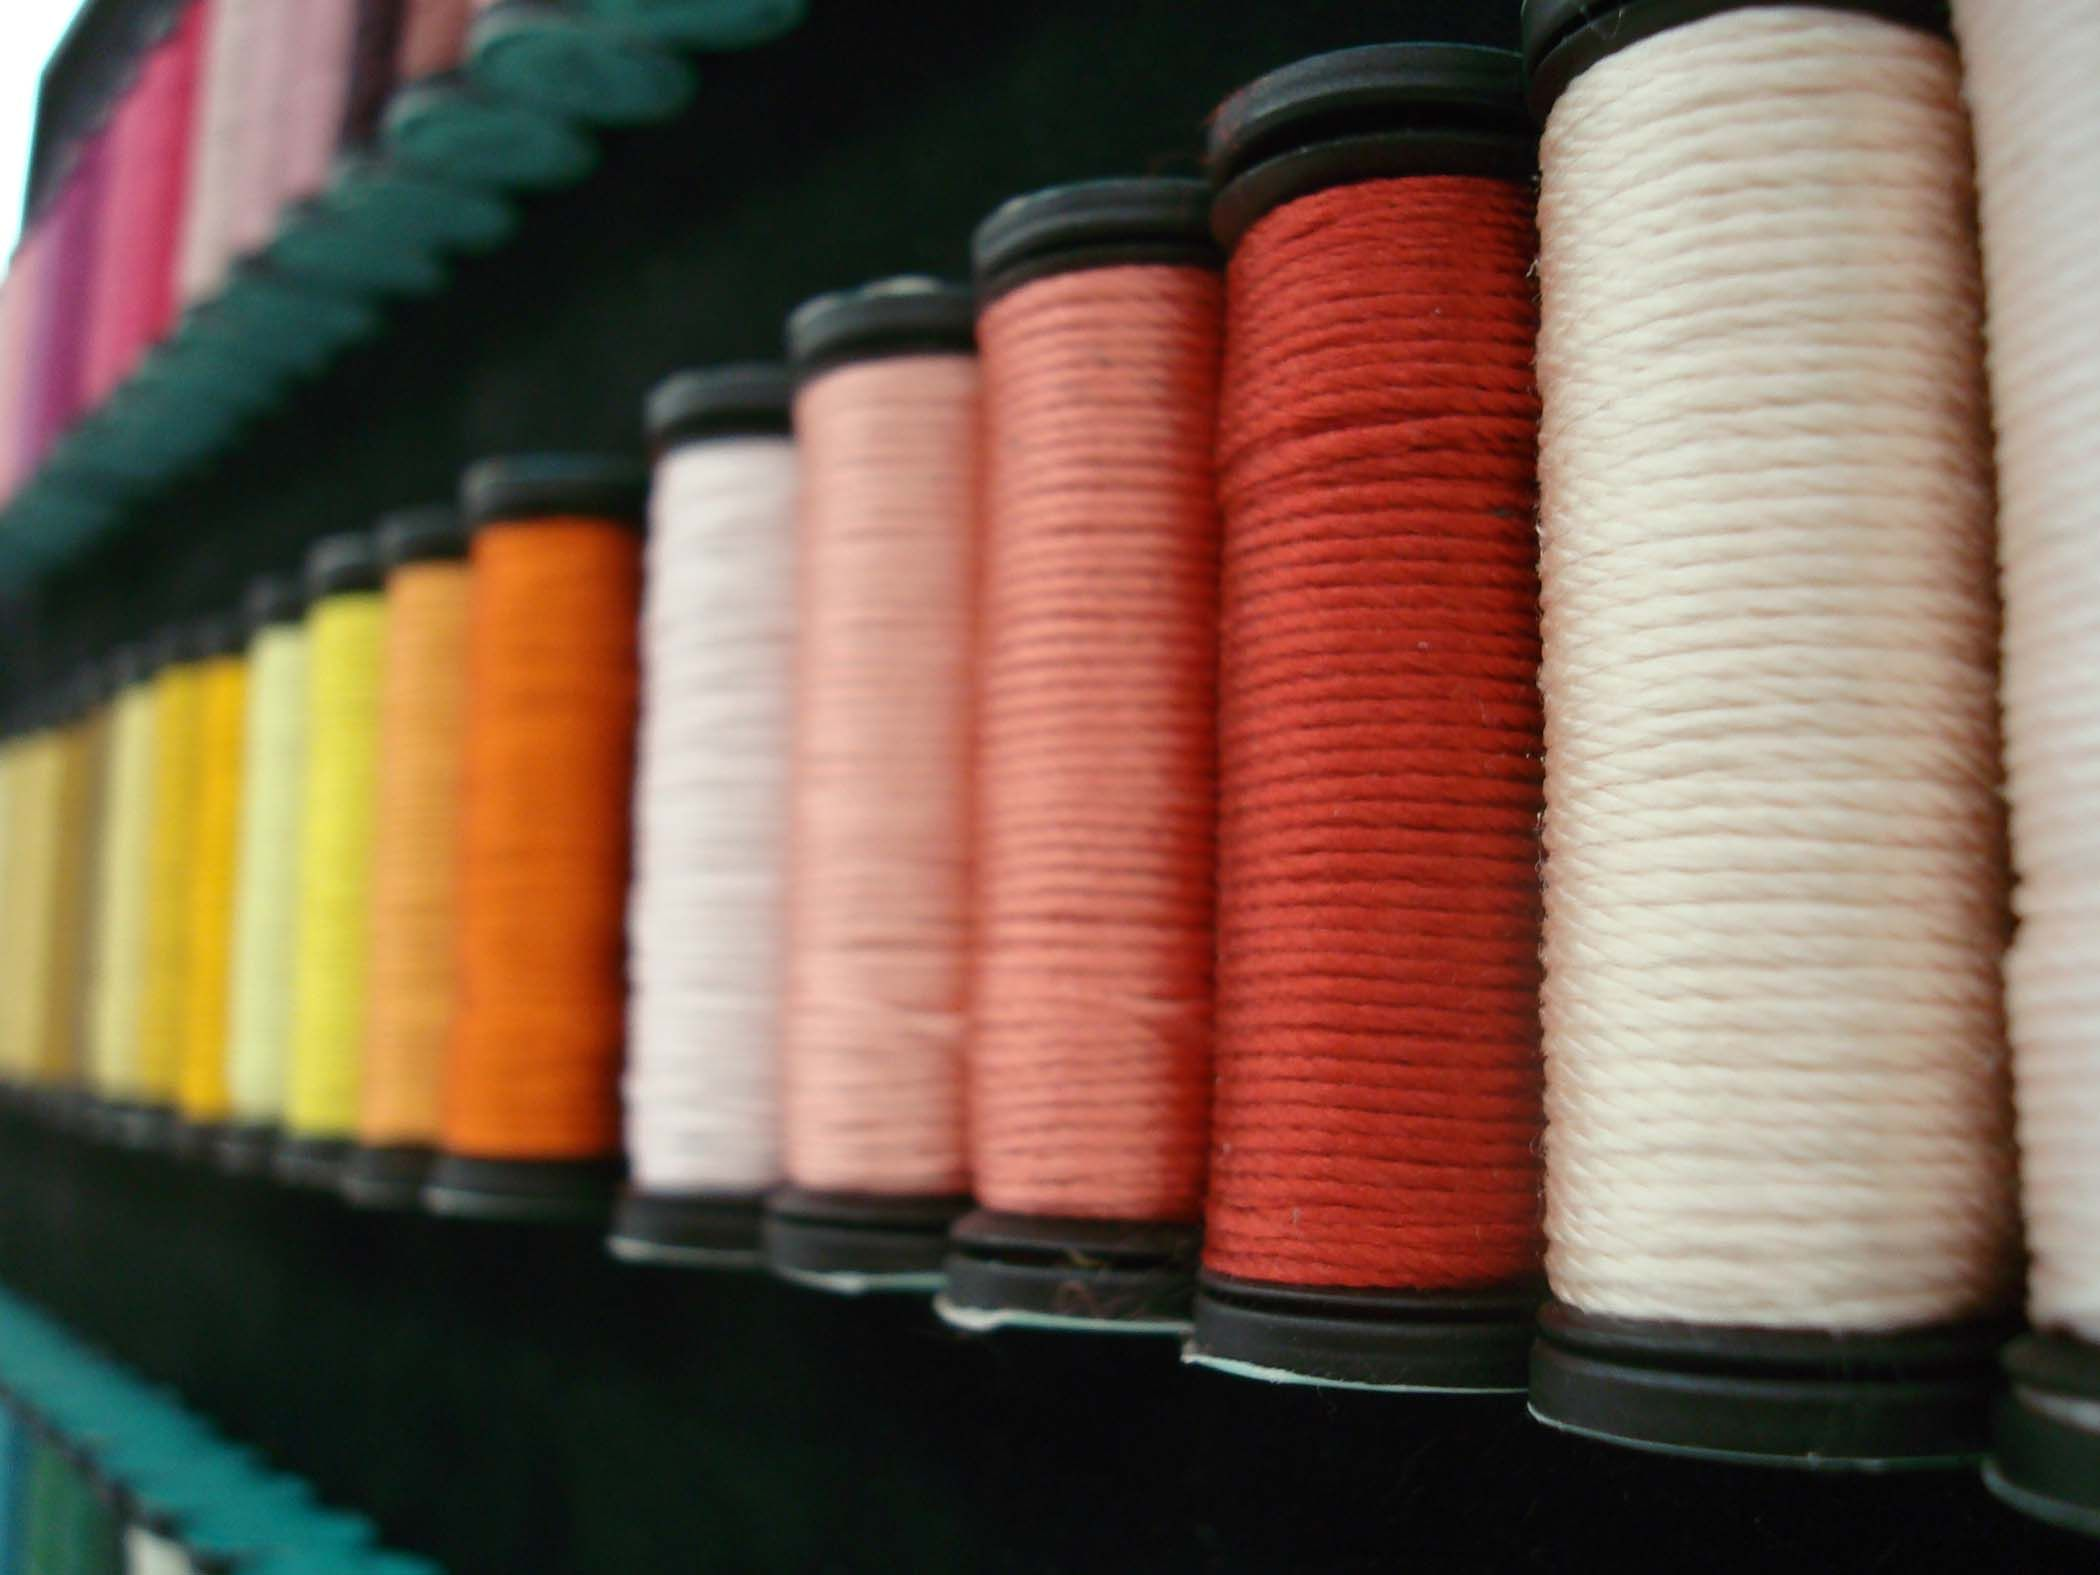 Coral shades of kreinik silk serica a 3 ply twisted filament silk coral shades of kreinik silk serica a 3 ply twisted filament silk use nvjuhfo Image collections